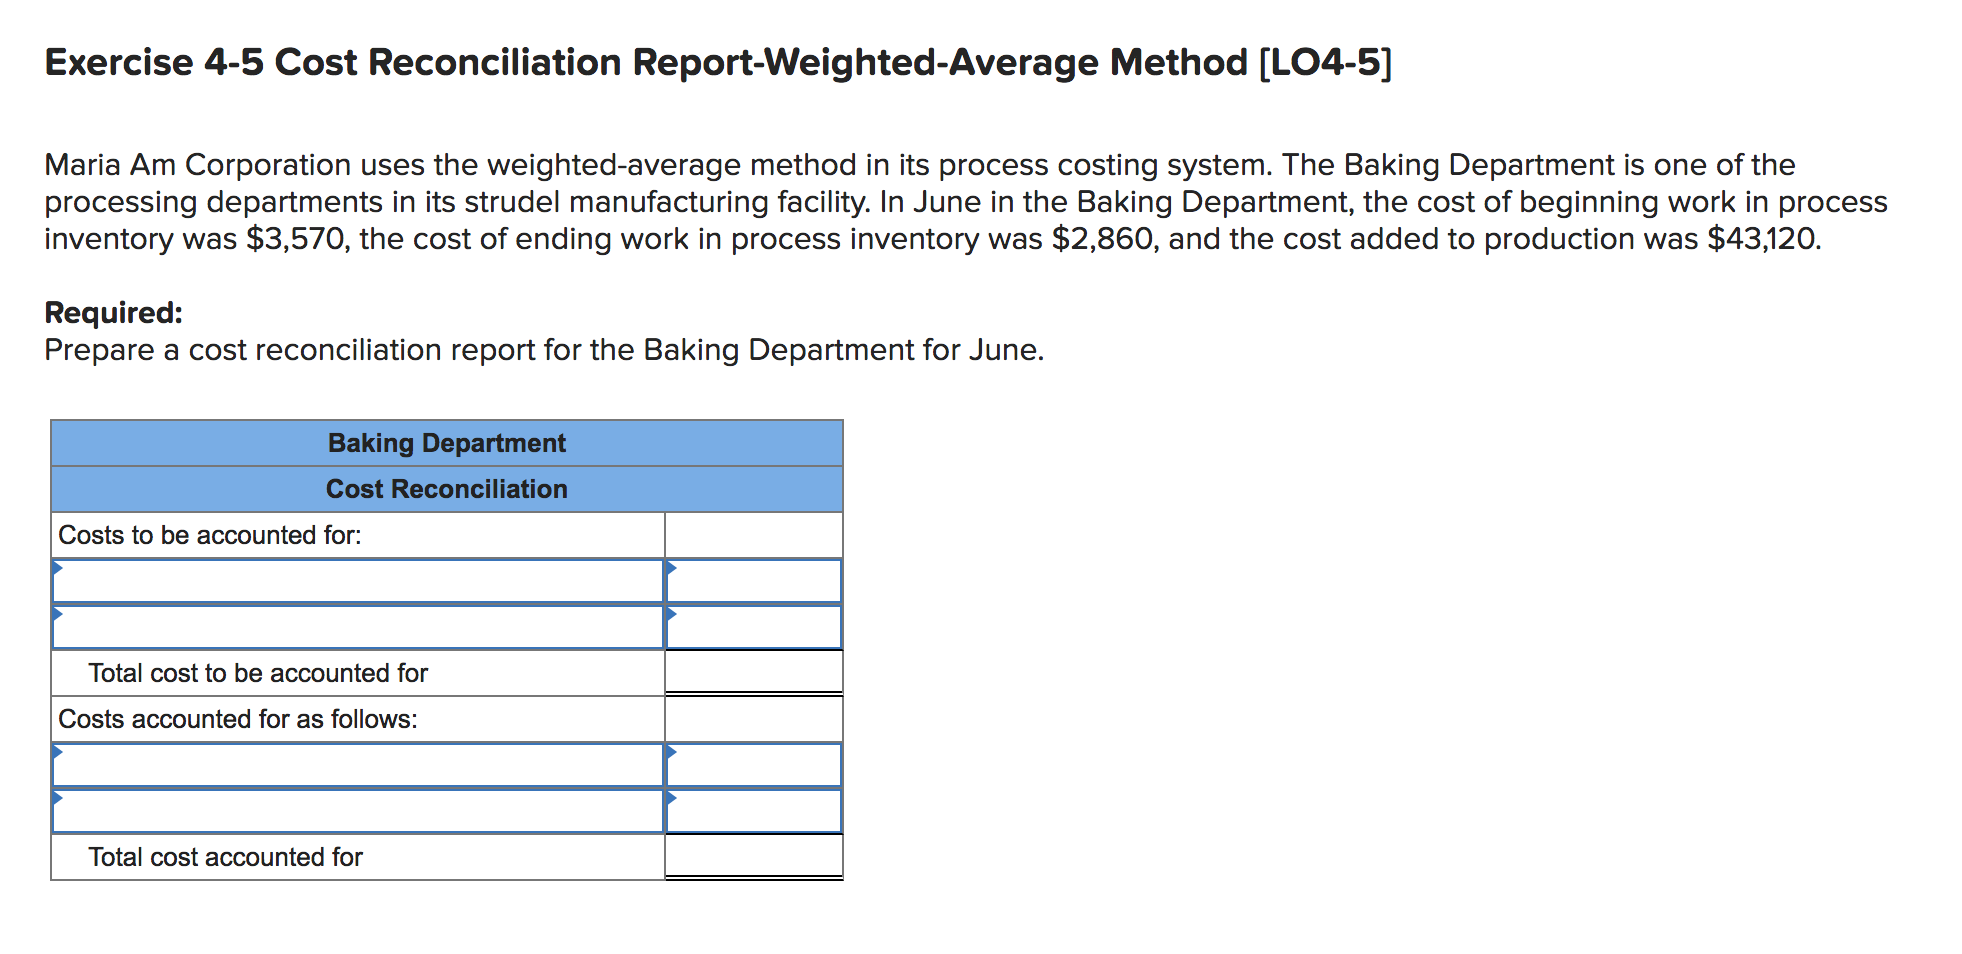 Exercise 4-5 Cost Reconciliation Report-Weighted-Average Method (LO4-5] Maria Am Corporation uses the weighted-average method in its process costing system. The Baking Department is one of the processing departments in its strudel manufacturing facility. In June in the Baking Department, the cost of beginning work in process inventory was $3,570, the cost of ending work in process inventory was $2,860, and the cost added to production was $43,120. Required: Prepare a cost reconciliation report for the Baking Department for June. Baking Department Cost Reconciliation Costs to be accounted for: Total cost to be accounted for Costs accounted for as follows: Total cost accounted for